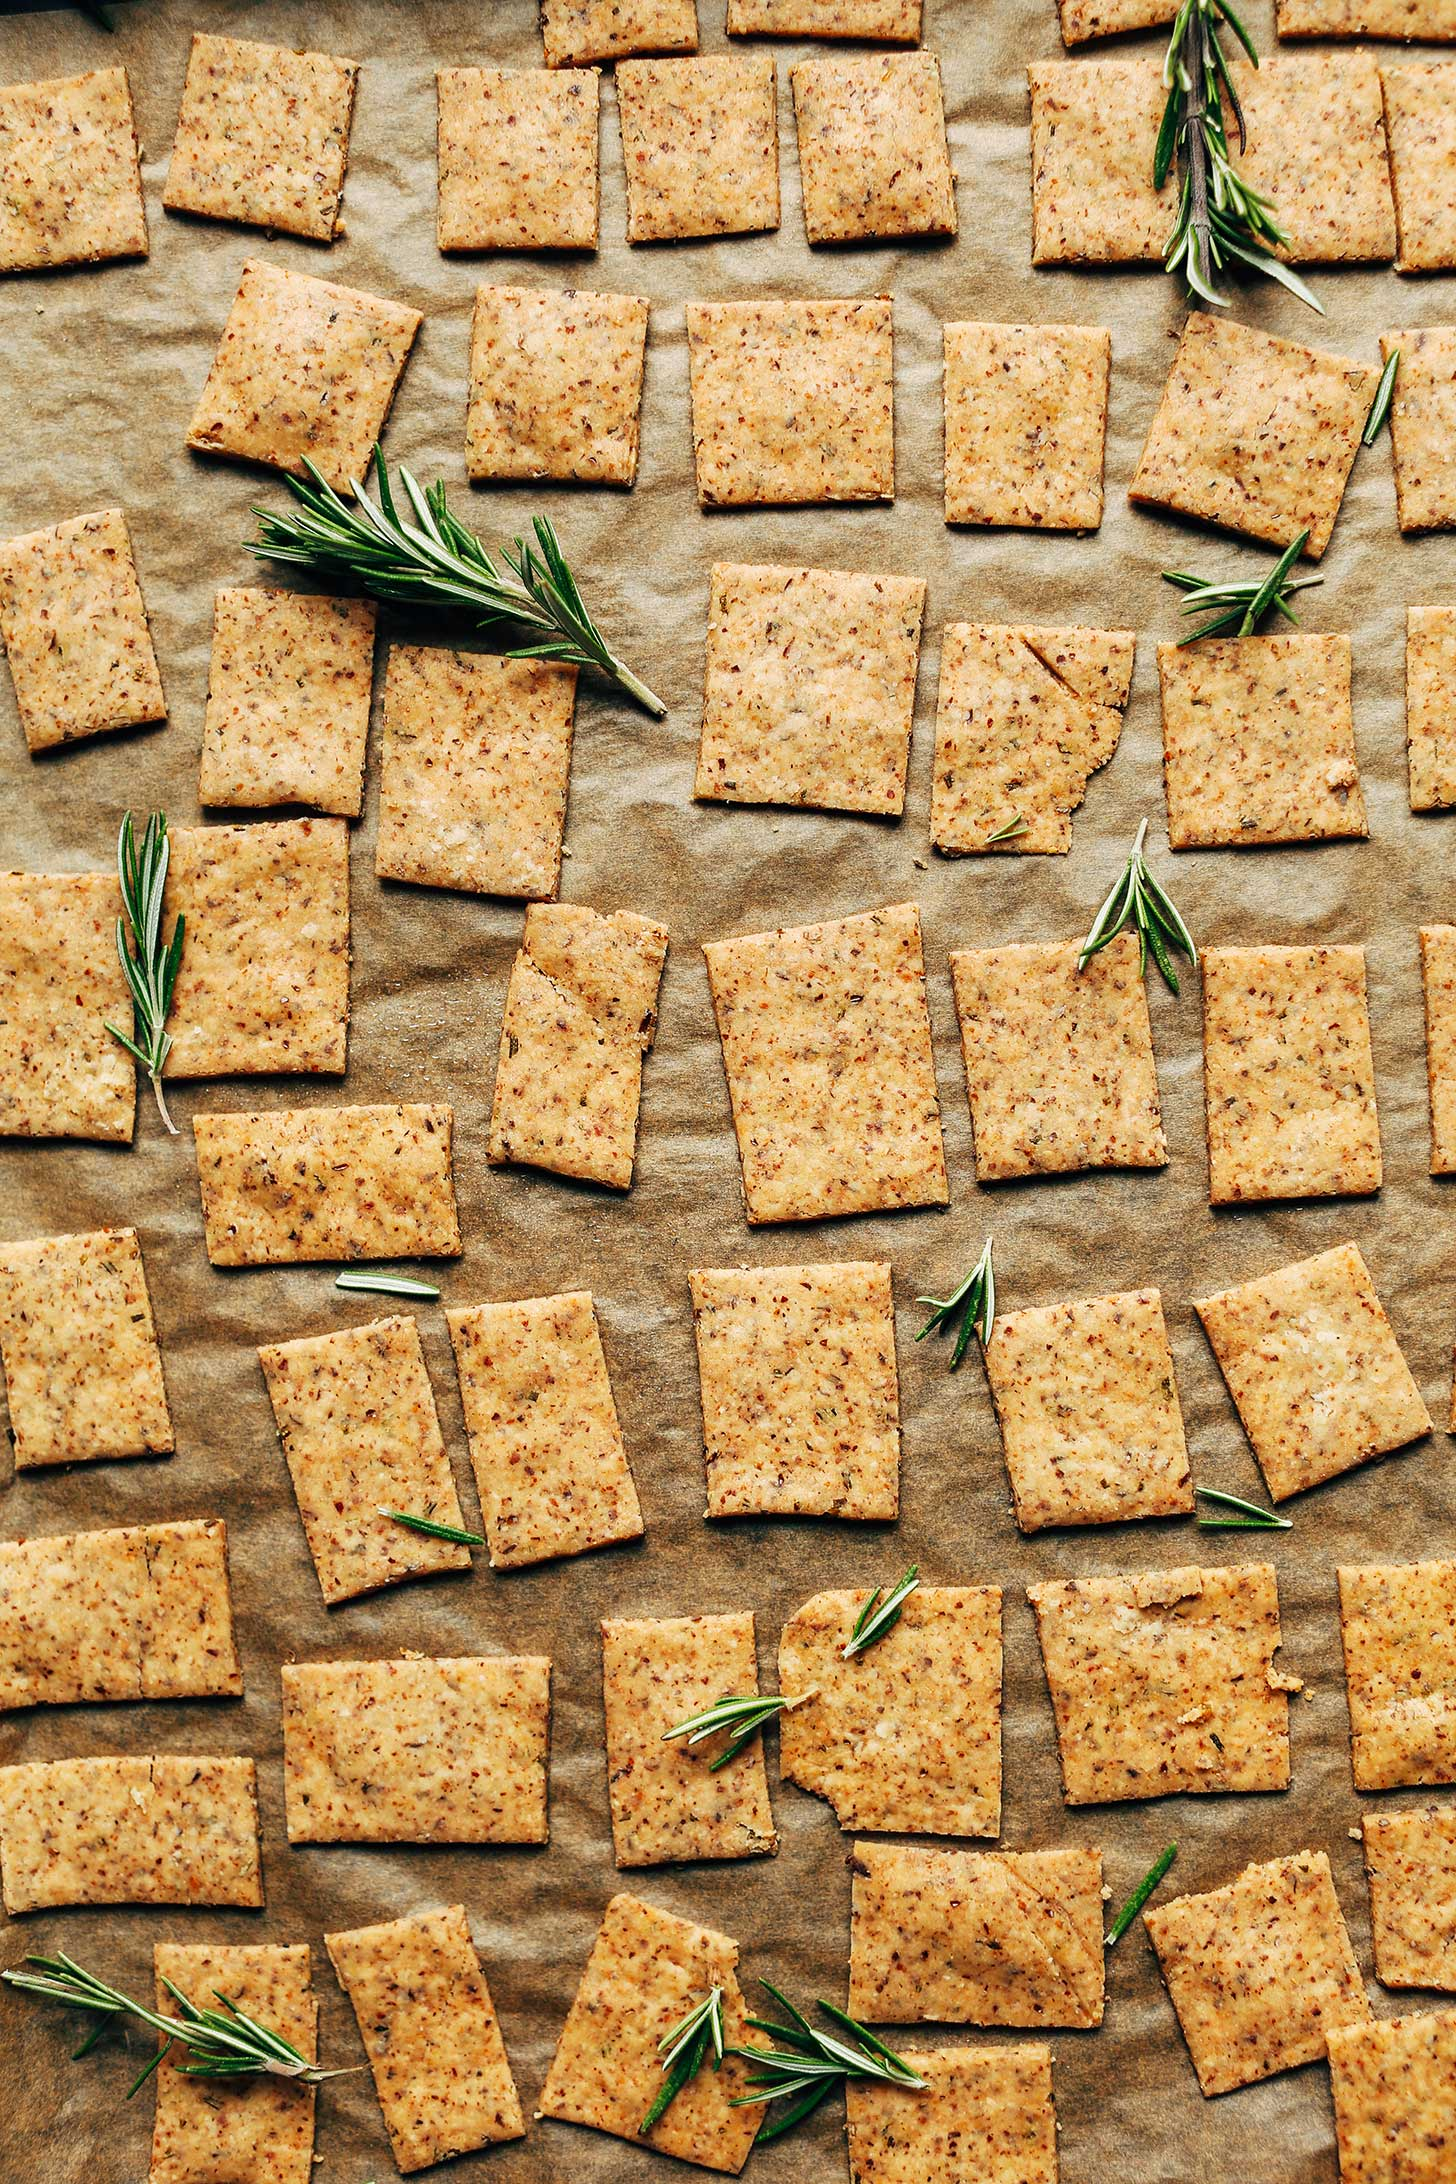 Baking sheet filled with crispy Gluten-Free Vegan Rosemary Crackers